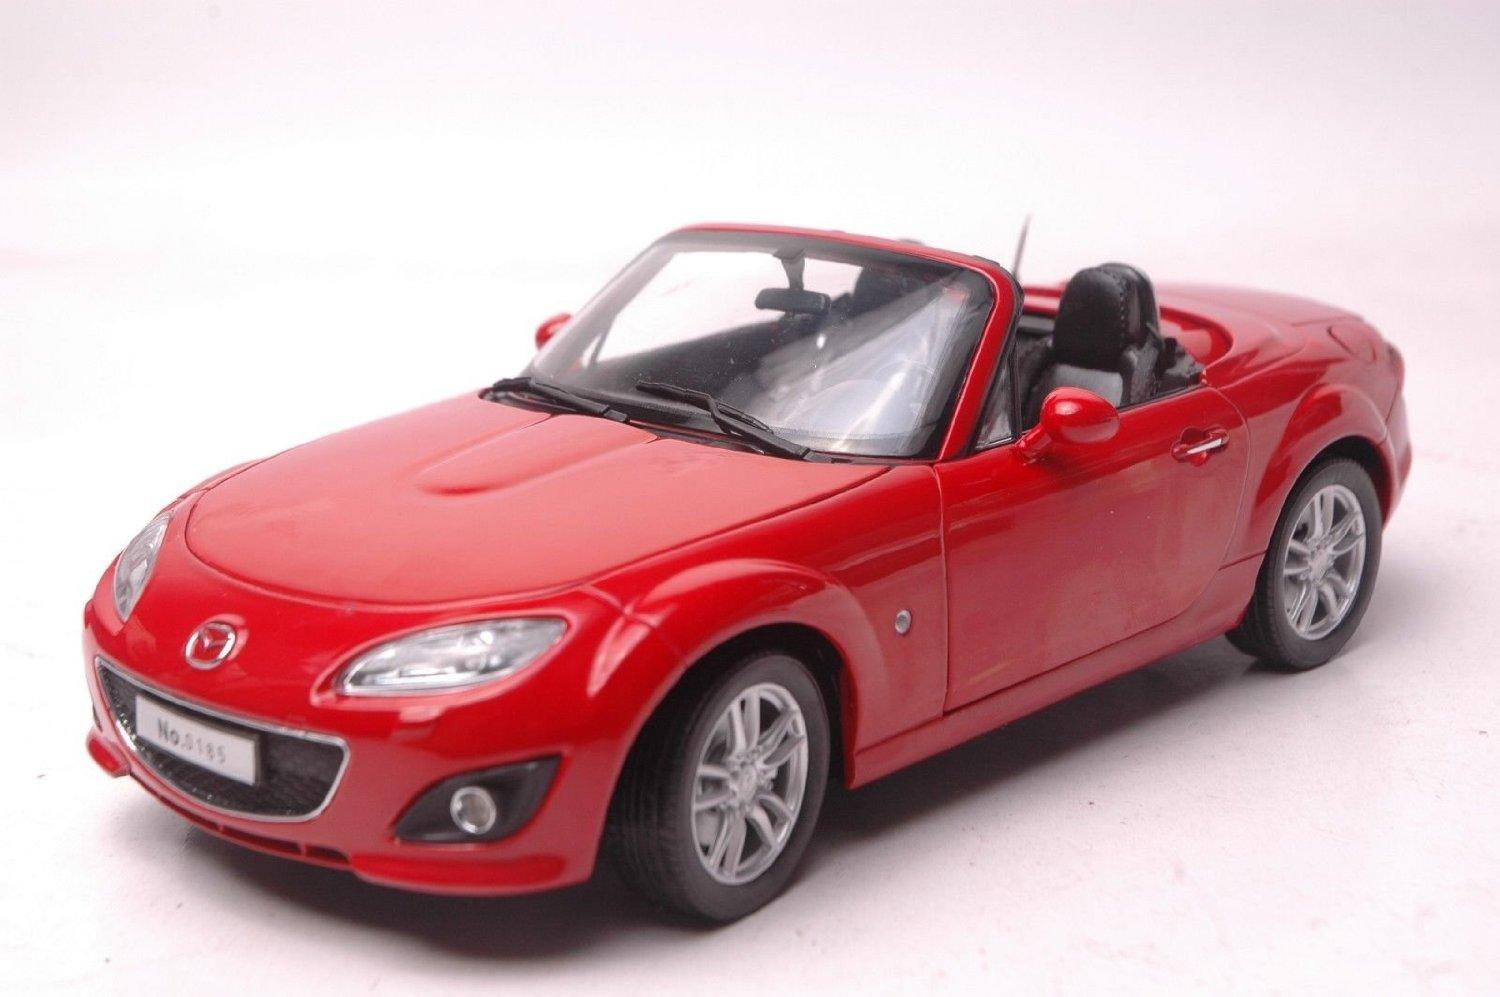 Get Quotations · Red 1/18 Mazda MX-5 MX5 Miata Roadster Coupe Alloy Model  Car Toy